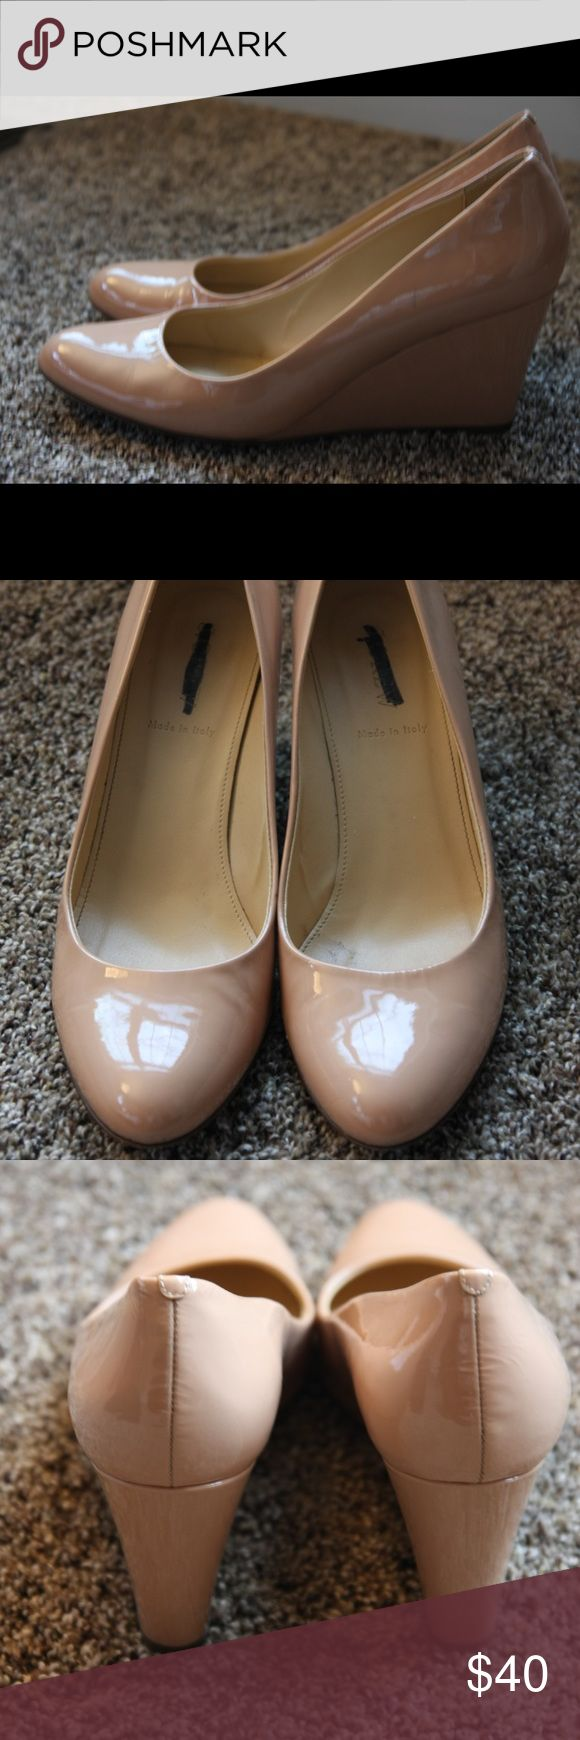 J. Crew Martina patent wedge heel Blush sz 8.5 JCrew Martina patent leather wedge heel in blush color. Size 8.5. Covered wedge heel, round toe, leather soles and uppers, 2.5 inch heel. Scuff on the side near the toe in one shoe (see photo). These were purchased from the warehouse, so the j crew tag on the sole was marked by the store, but these are NOT j crew factory shoes. Only worn 5-7 times. In excellent condition J. Crew Shoes Heels